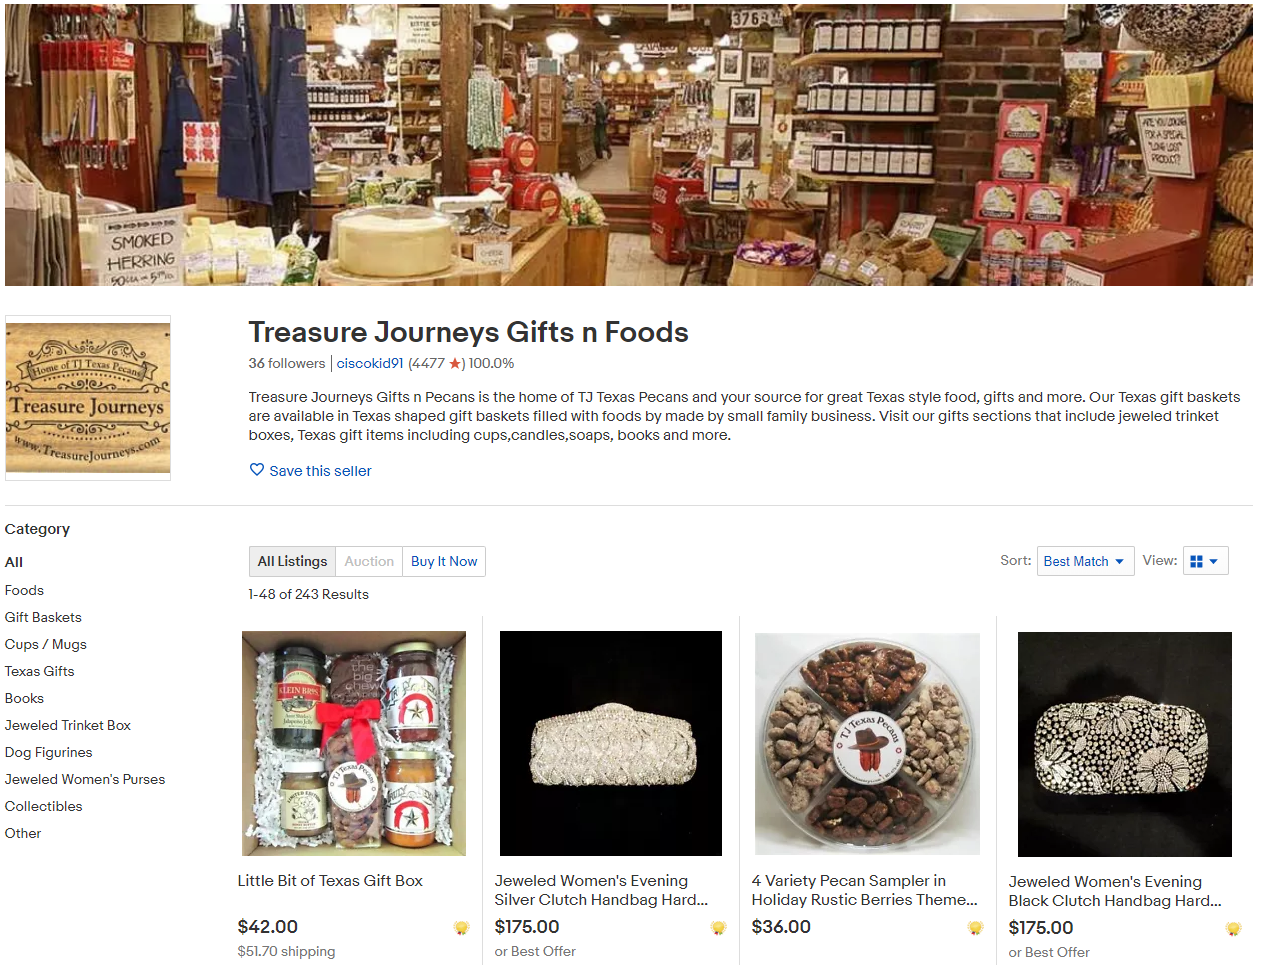 Treasure Journey Gifts N Foods